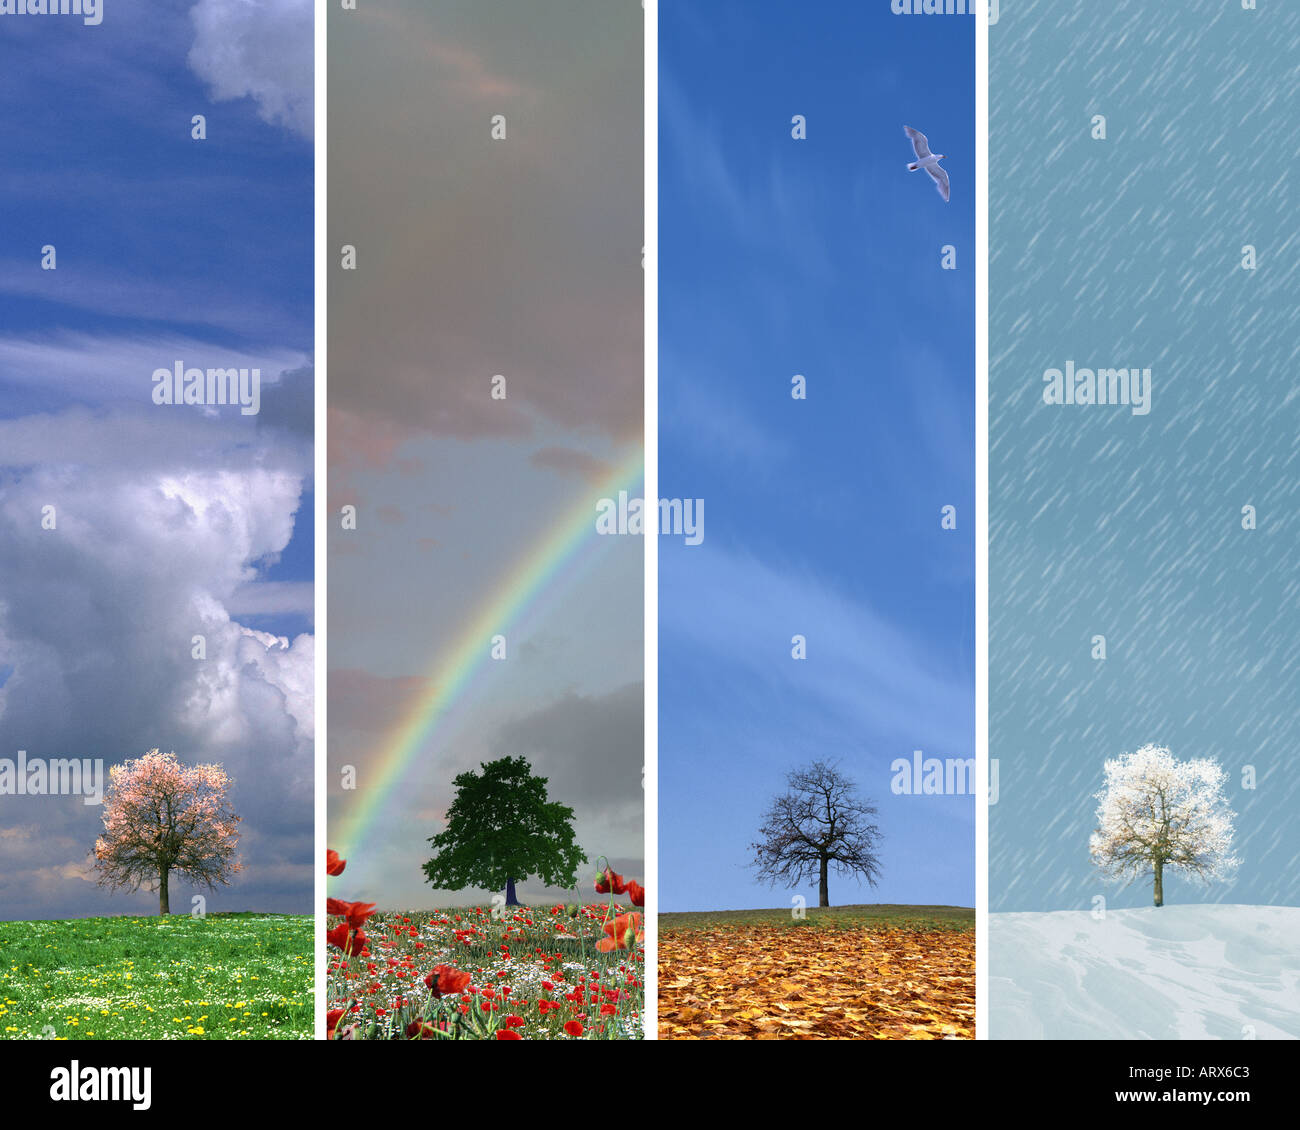 FOUR SEASONS: Combination of Spring Summer Fall and Winter - Stock Image